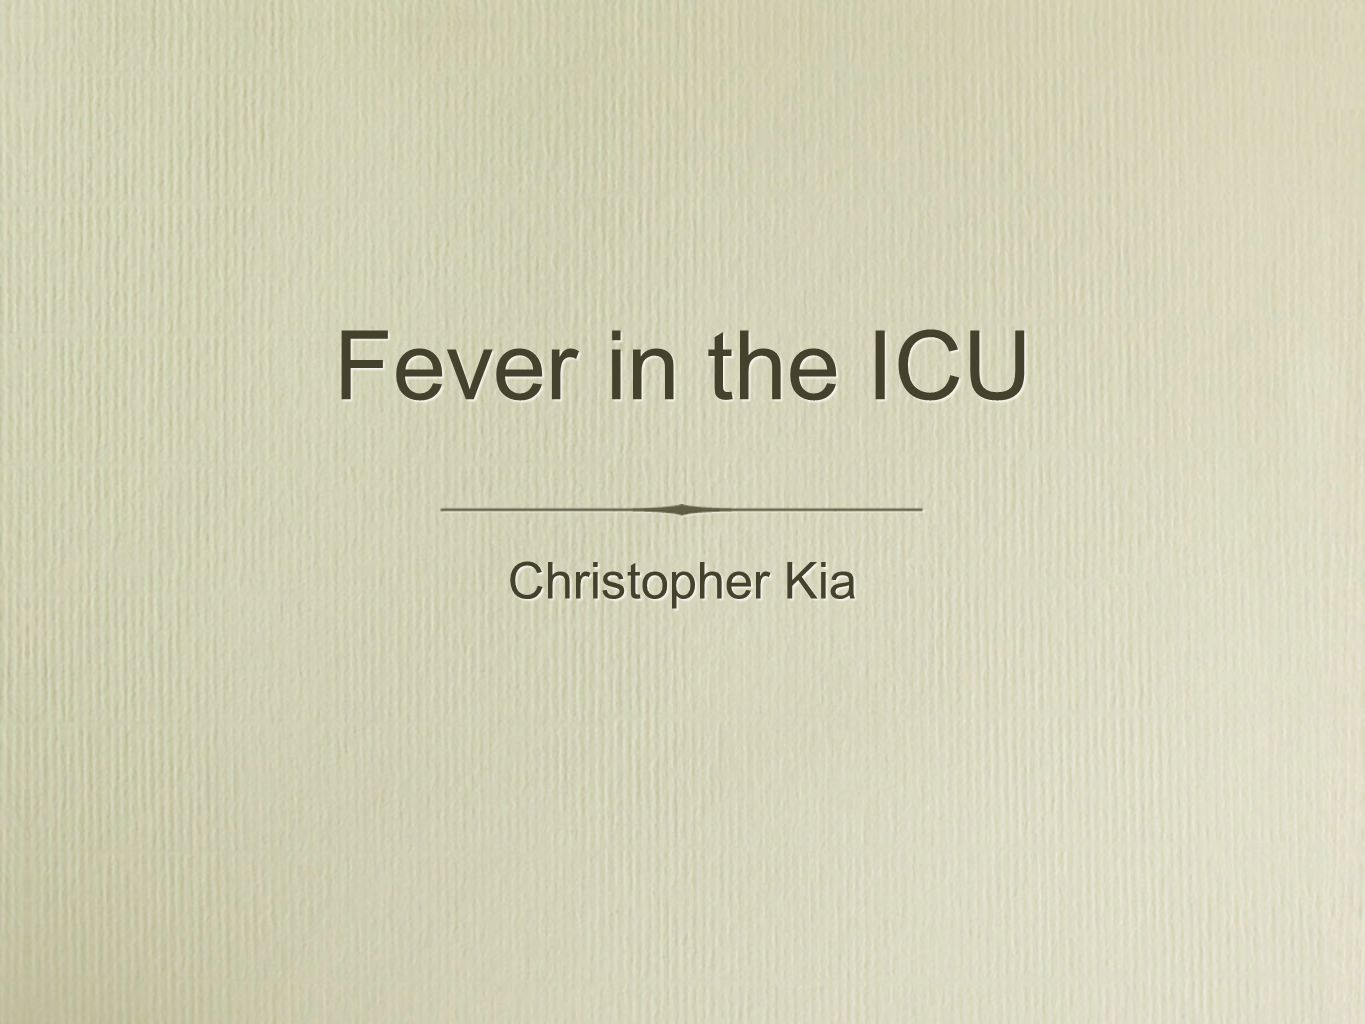 Fever in the ICU Christopher Kia